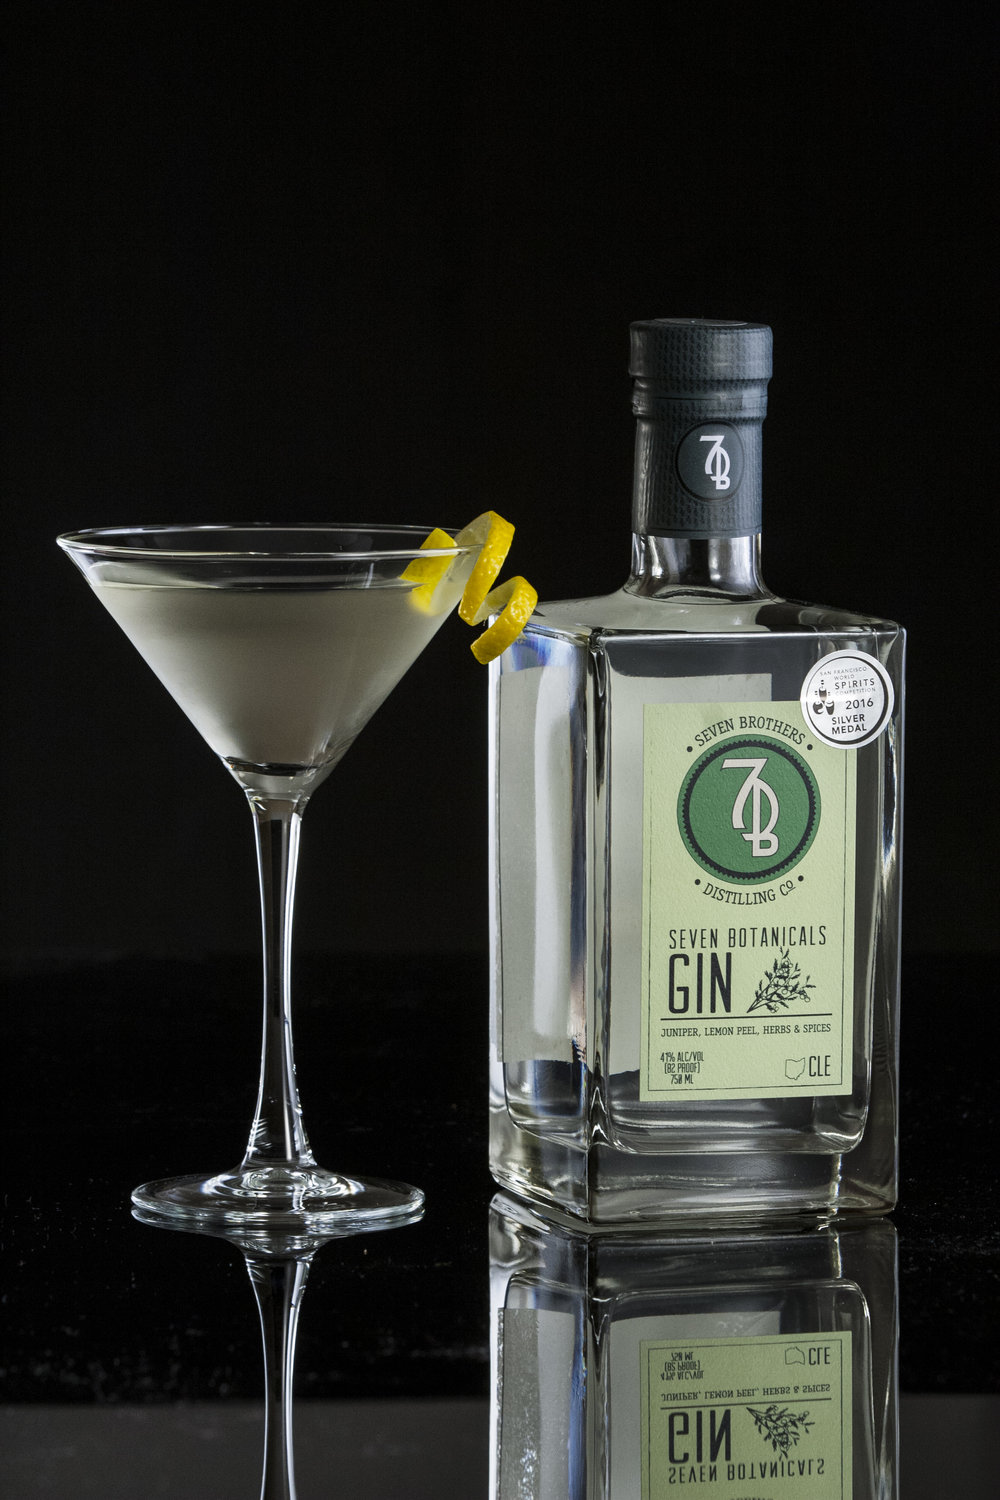 7B MARTINI - 3 oz Seven Brothers Seven Botanicals Gin1 oz Dry Vermouth1 dash Orange BittersStir ingredients over ice and strain into a Martini glass. Garnish with a lemon twist.